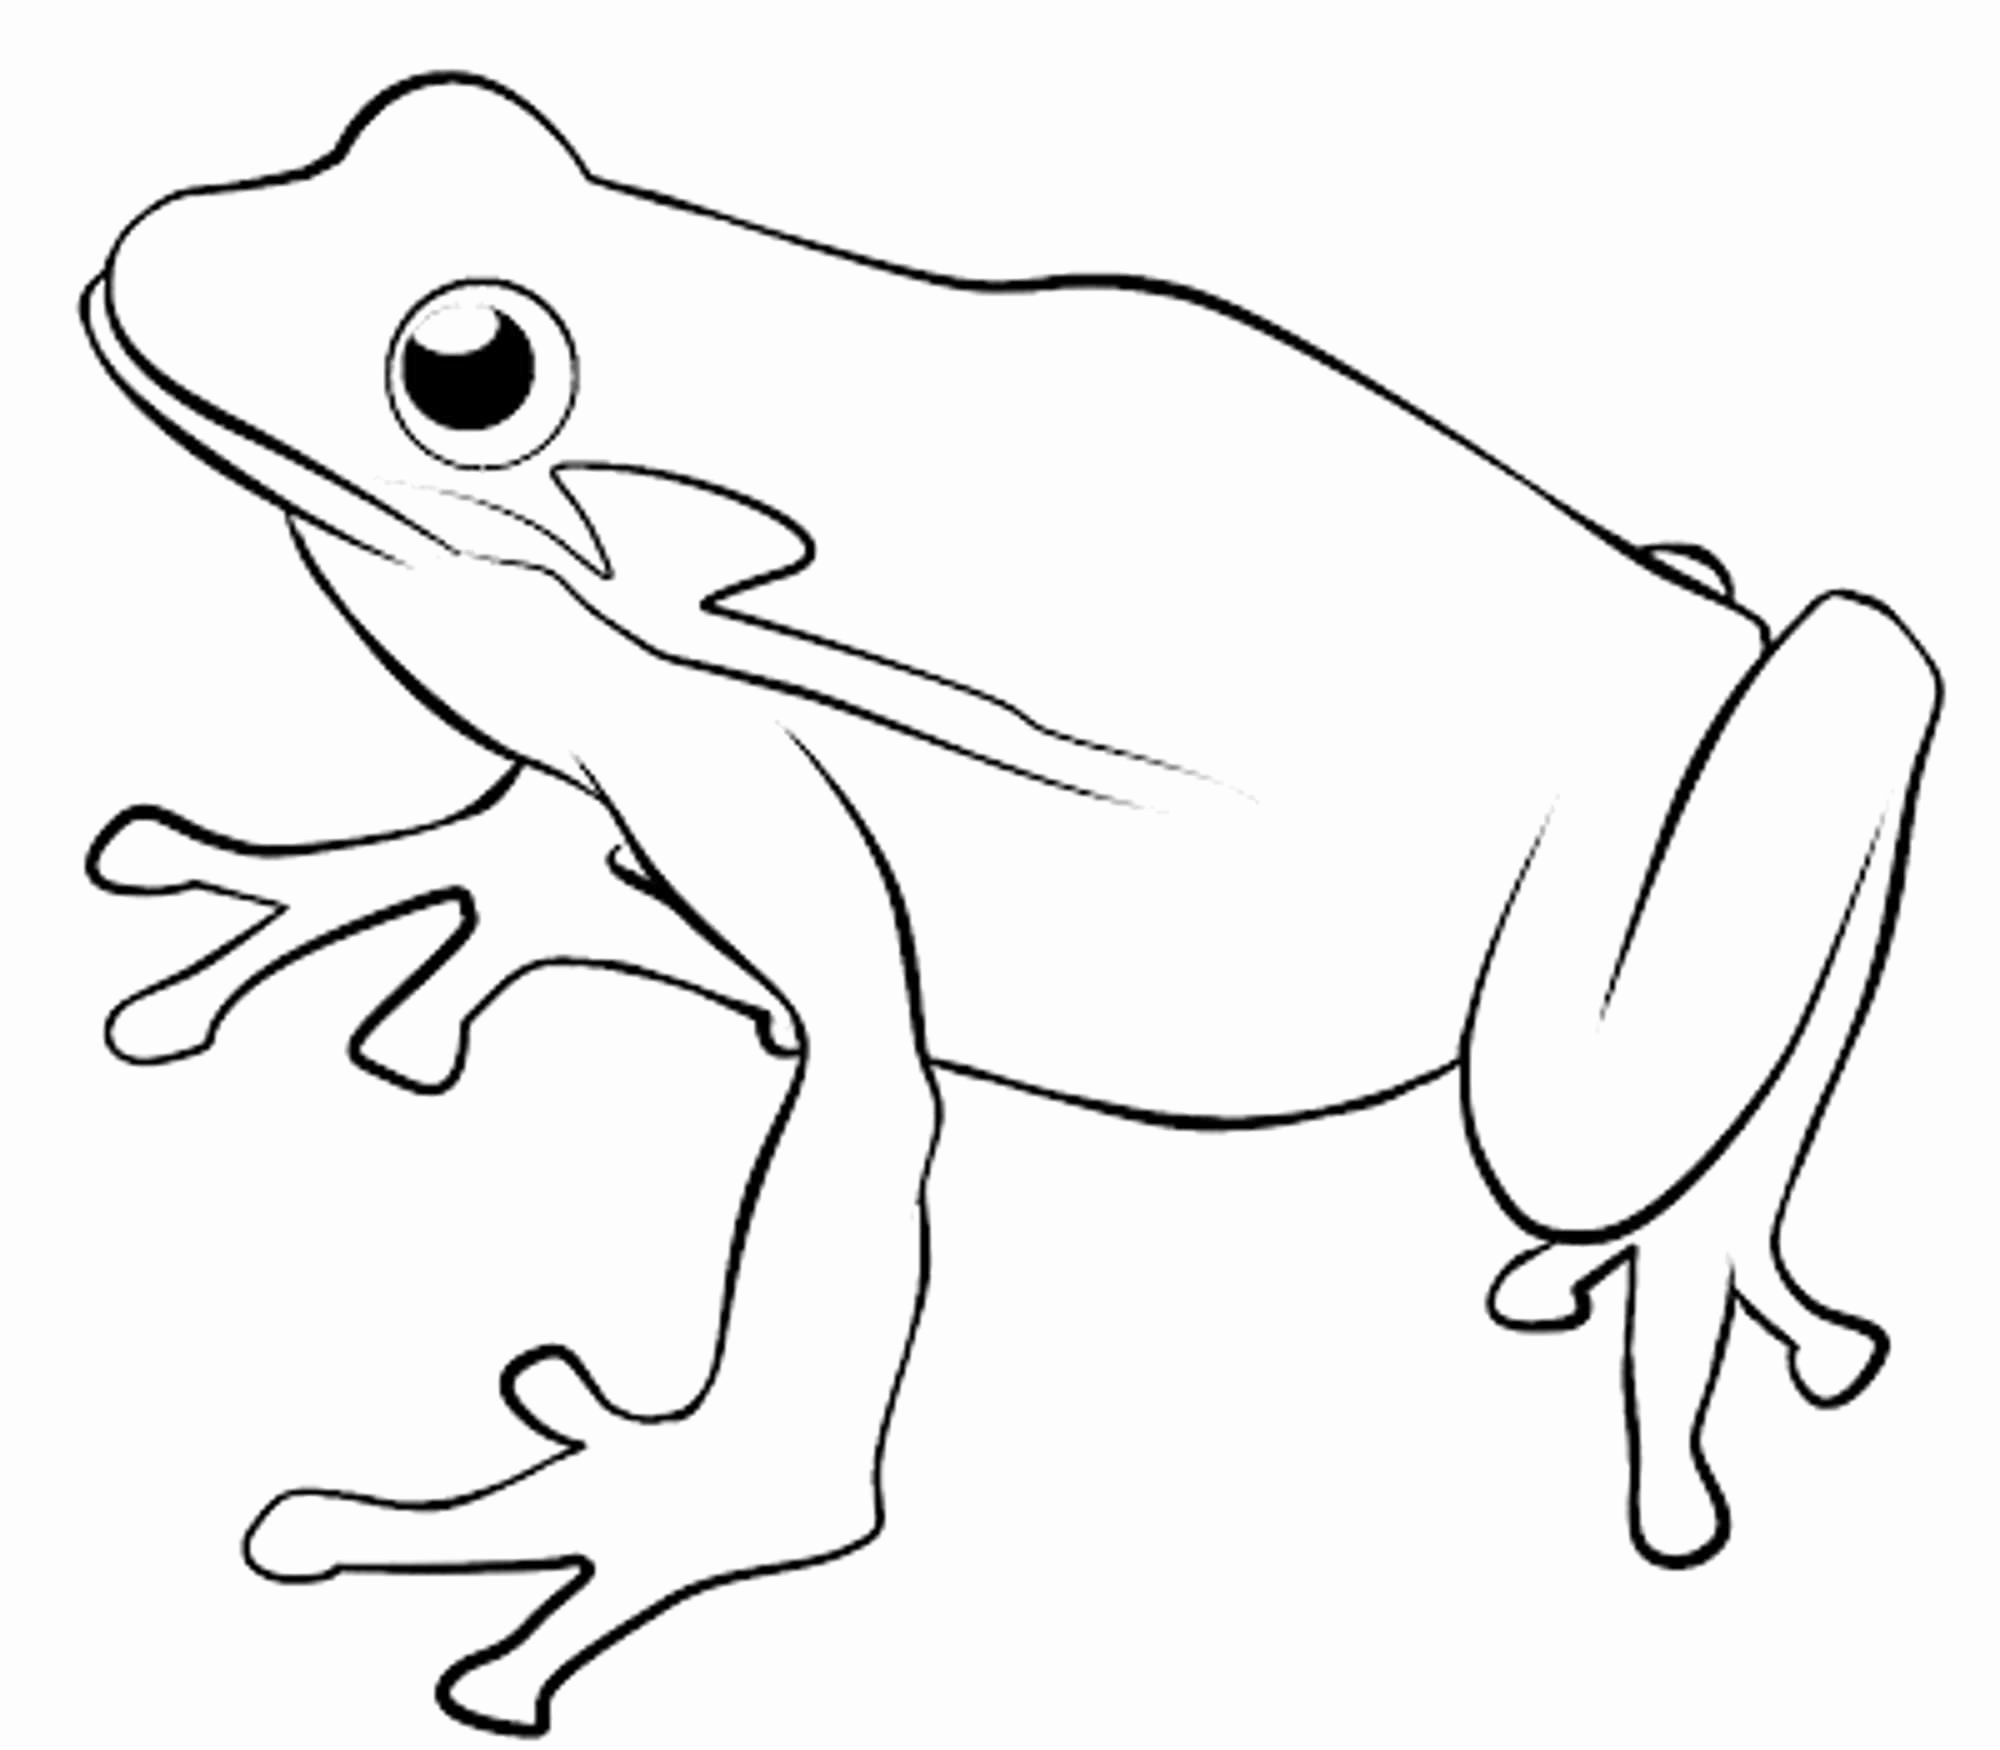 Tree Frog Coloring Page Frog Coloring Pages Snake Coloring